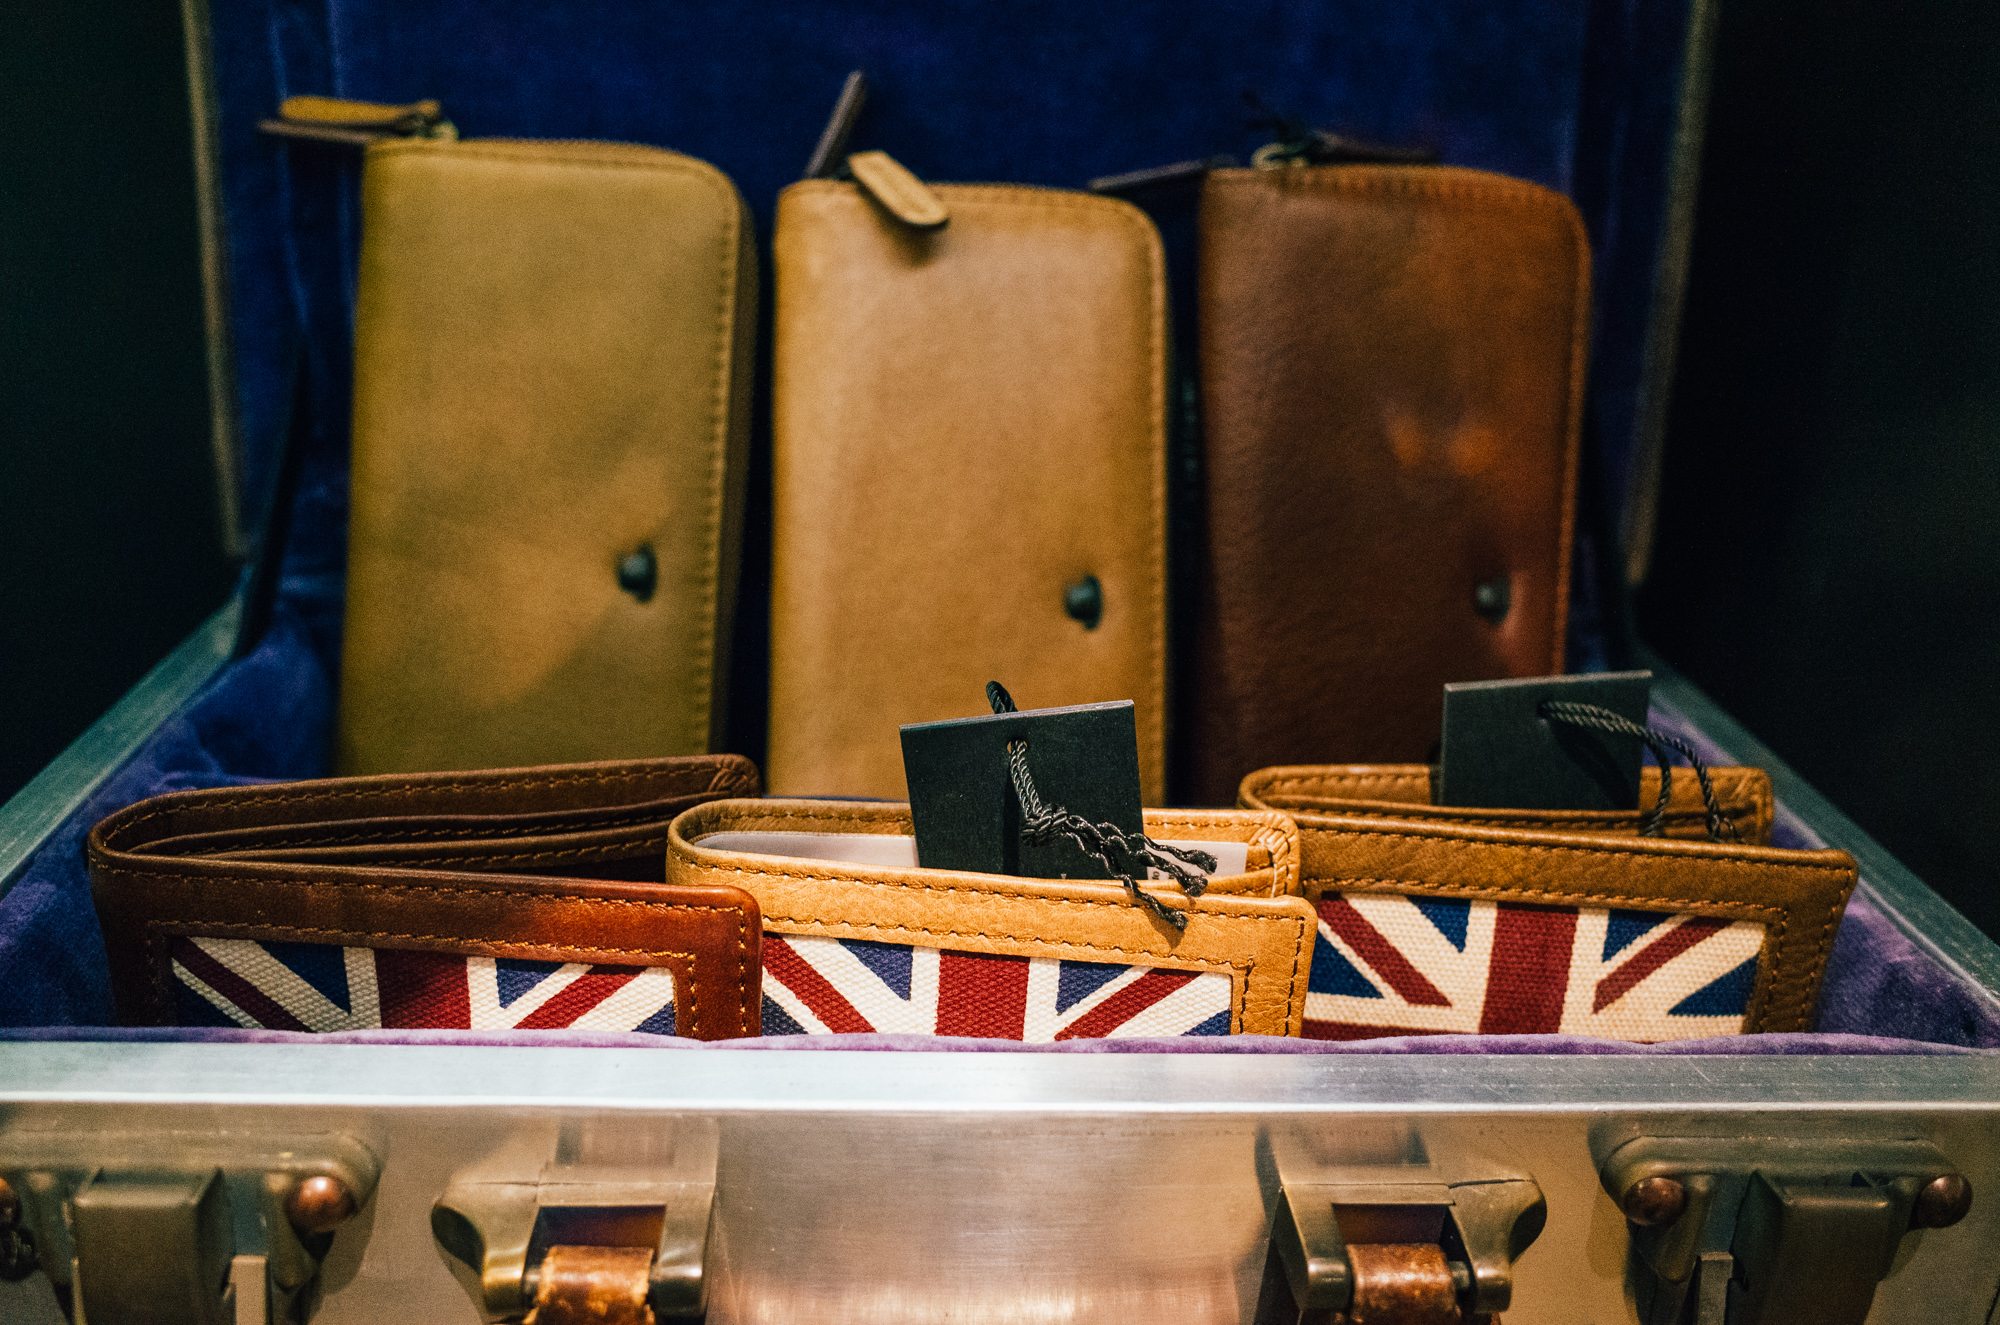 The selection of leather goods were endless, and they were just so beautifully hand-crafted that I couldn't help but ogle.